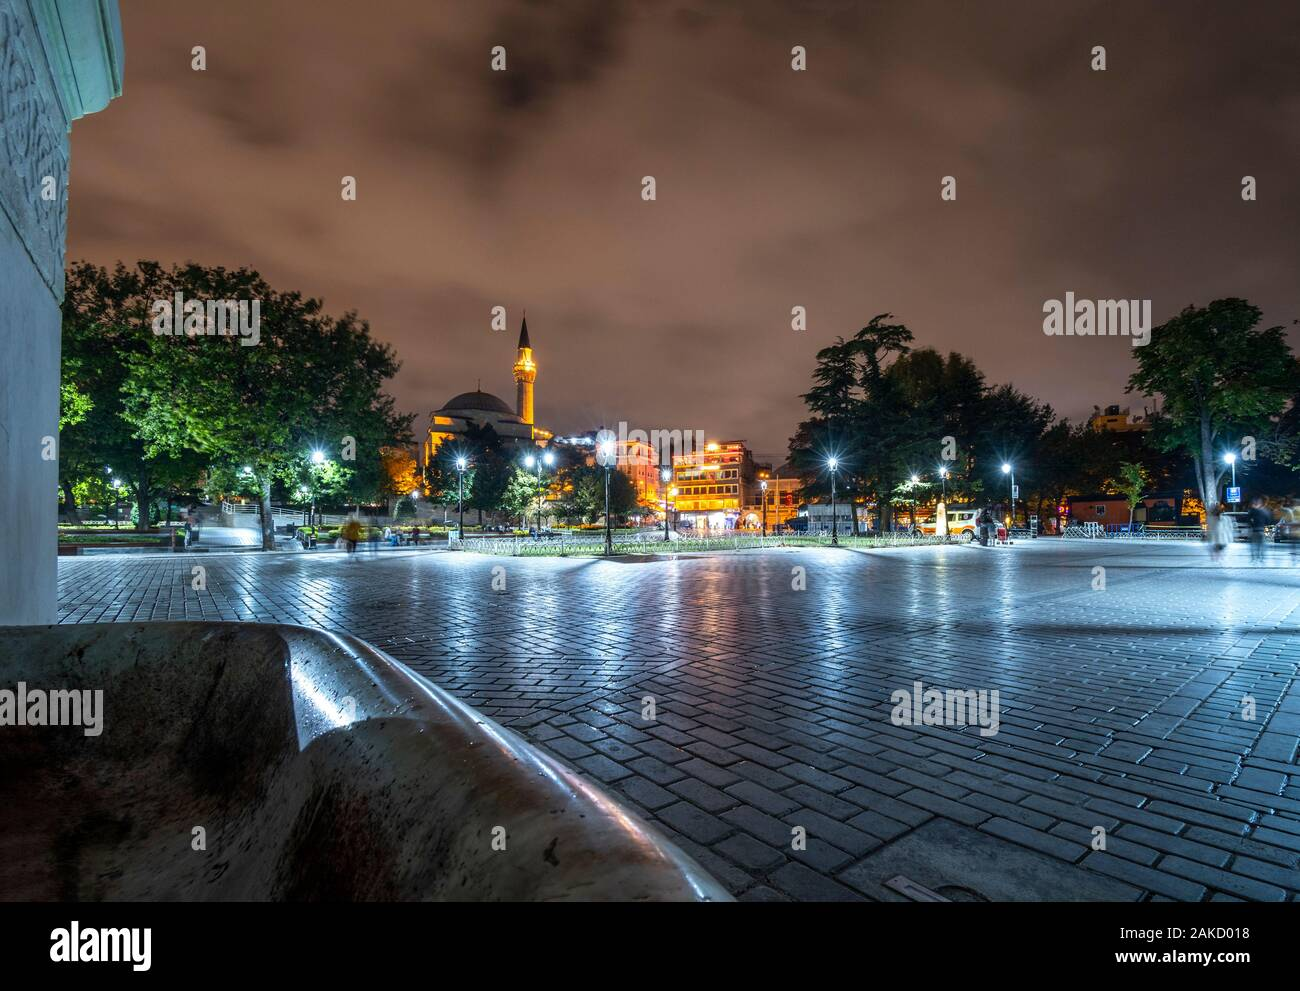 Late night view from Sultanahmet Square as tourists pass by near an illuminated minaret and mosque in Istanbul, Turkey Stock Photo